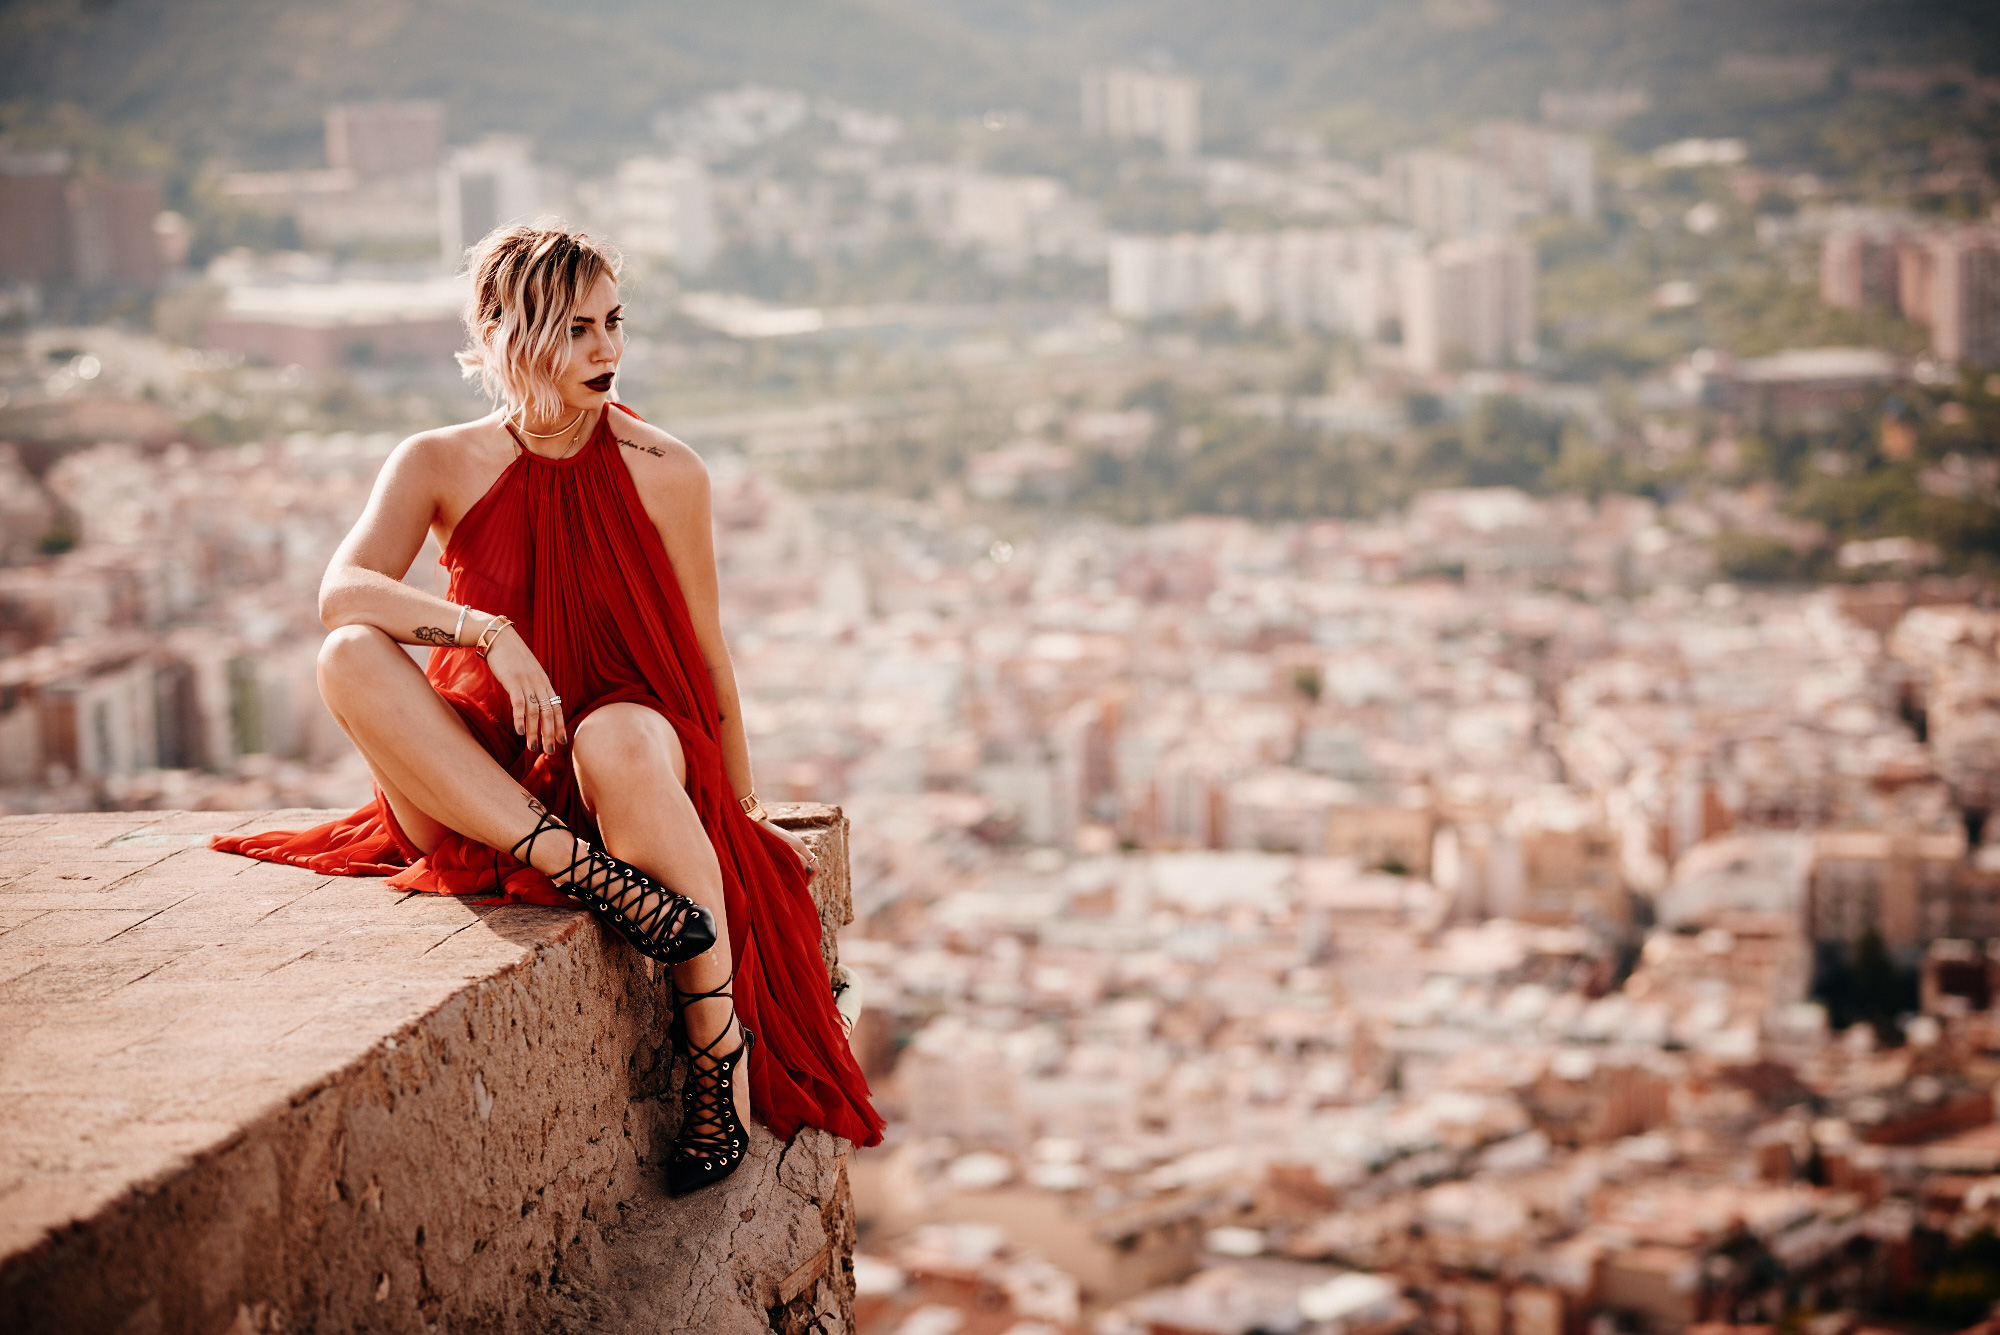 the lady in red | editorial fashion shooting in Barcelona with a view | red carpet dress from Dawid Tomaszewski and lace up heels from Elisabetta Franchi | style blogger Masha Sedgwick from Germany sitting on a roof top